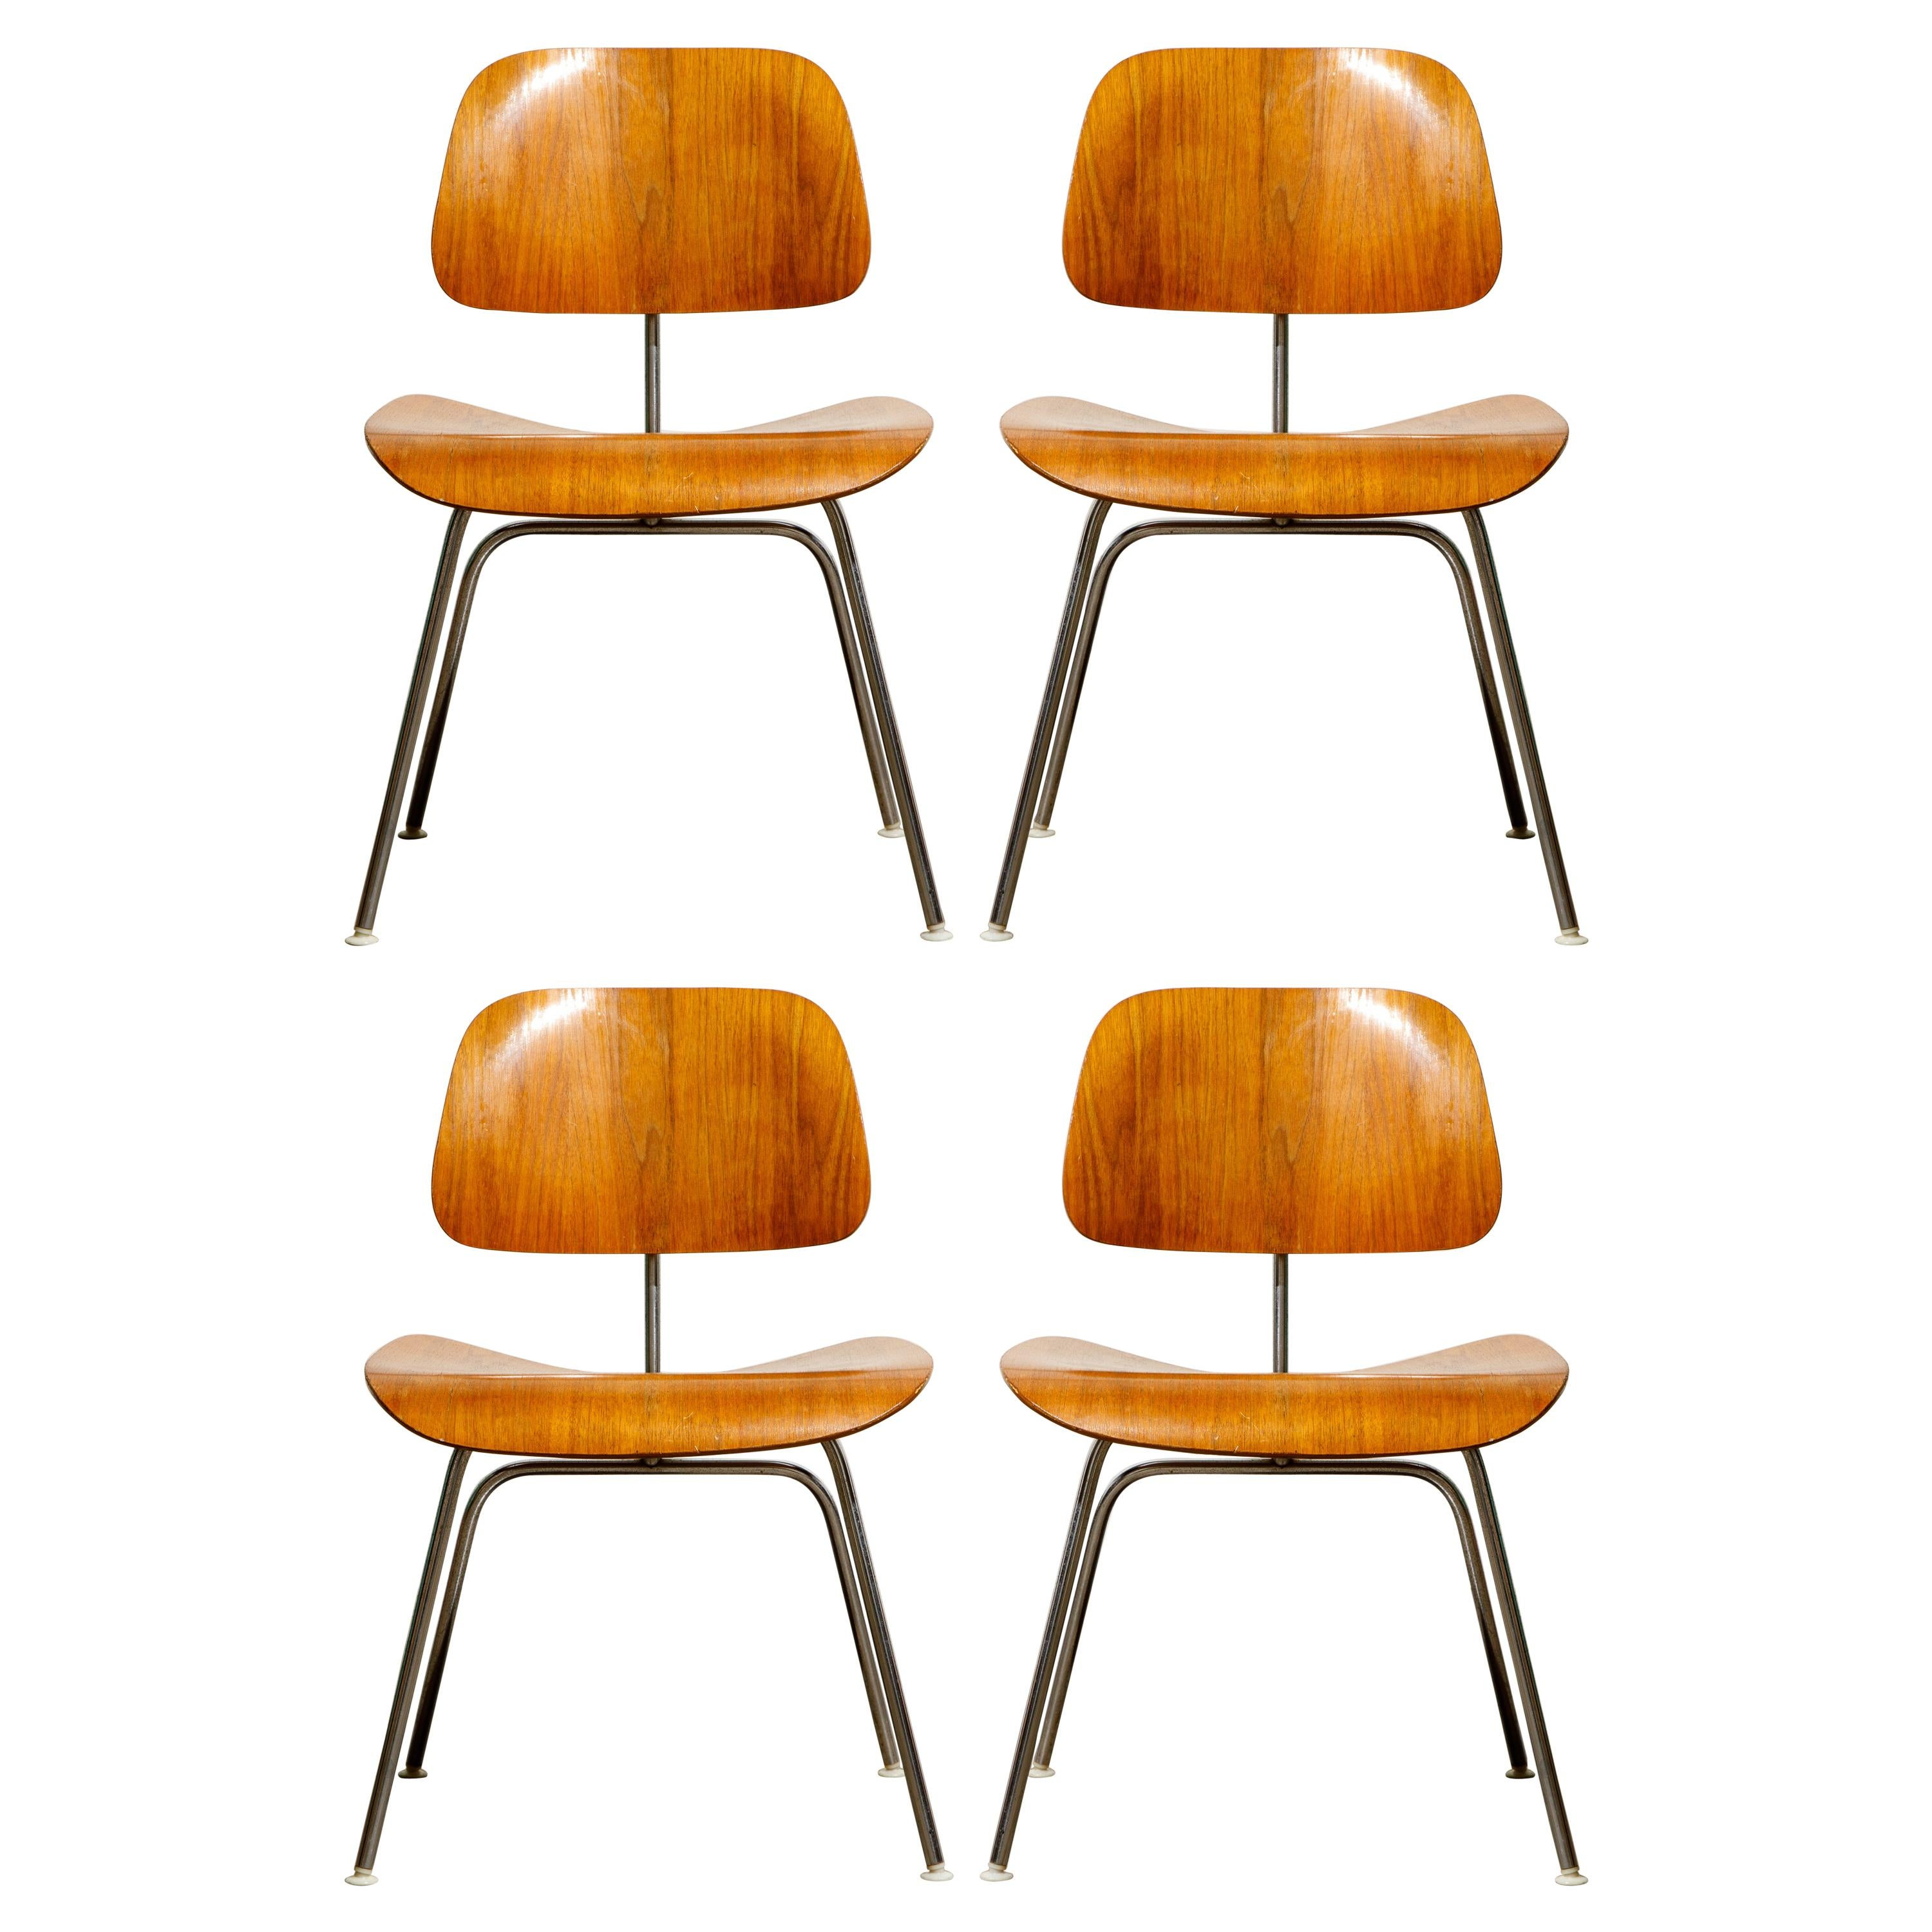 1950s Early Production 'DCM' Chairs by Charles Eames for Herman Miller, Signed